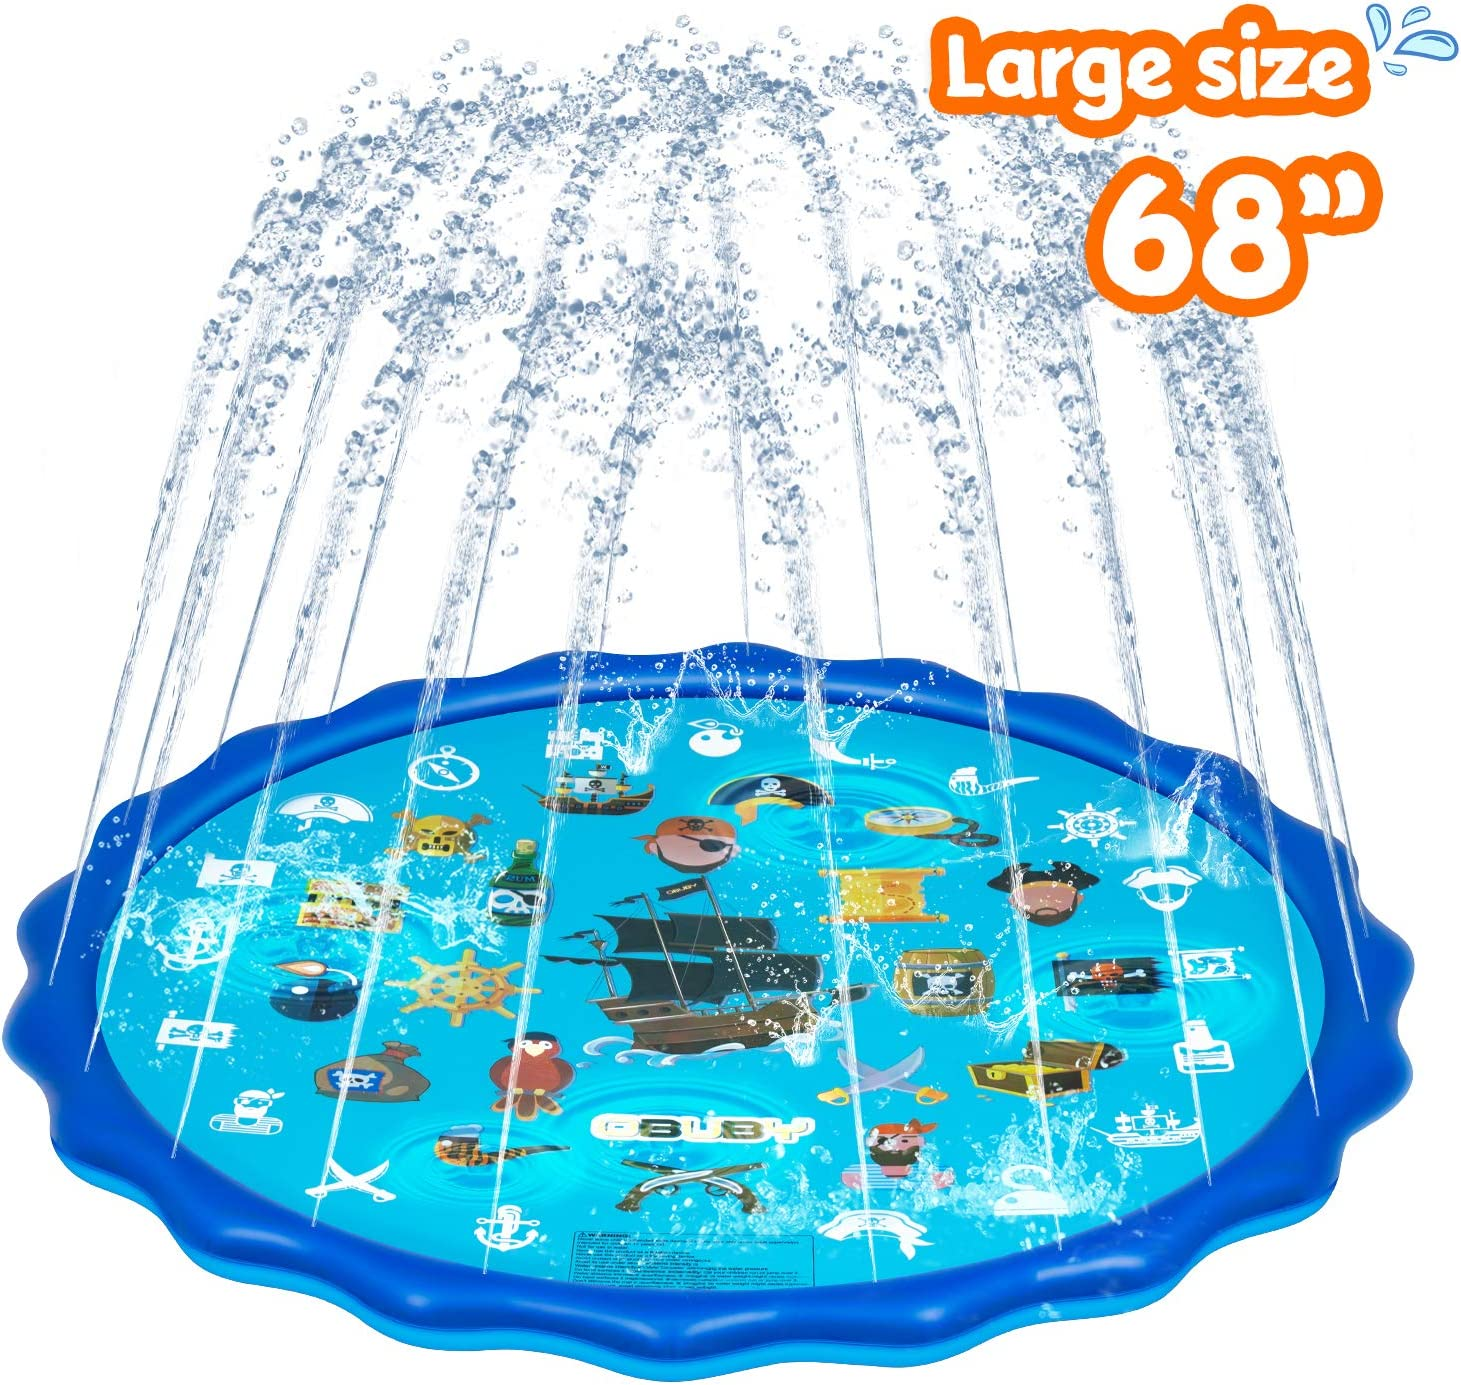 Obuby Sprinkle & Splash Play Mat, Sprinkler for Kids,Upgraded 68' Summer Outdoor Water Toys Wading Pool Splash pad for Toddlers Baby, Outside Water Play Mat for 1-12 Years Old Children Boys Girls: Toys & Games